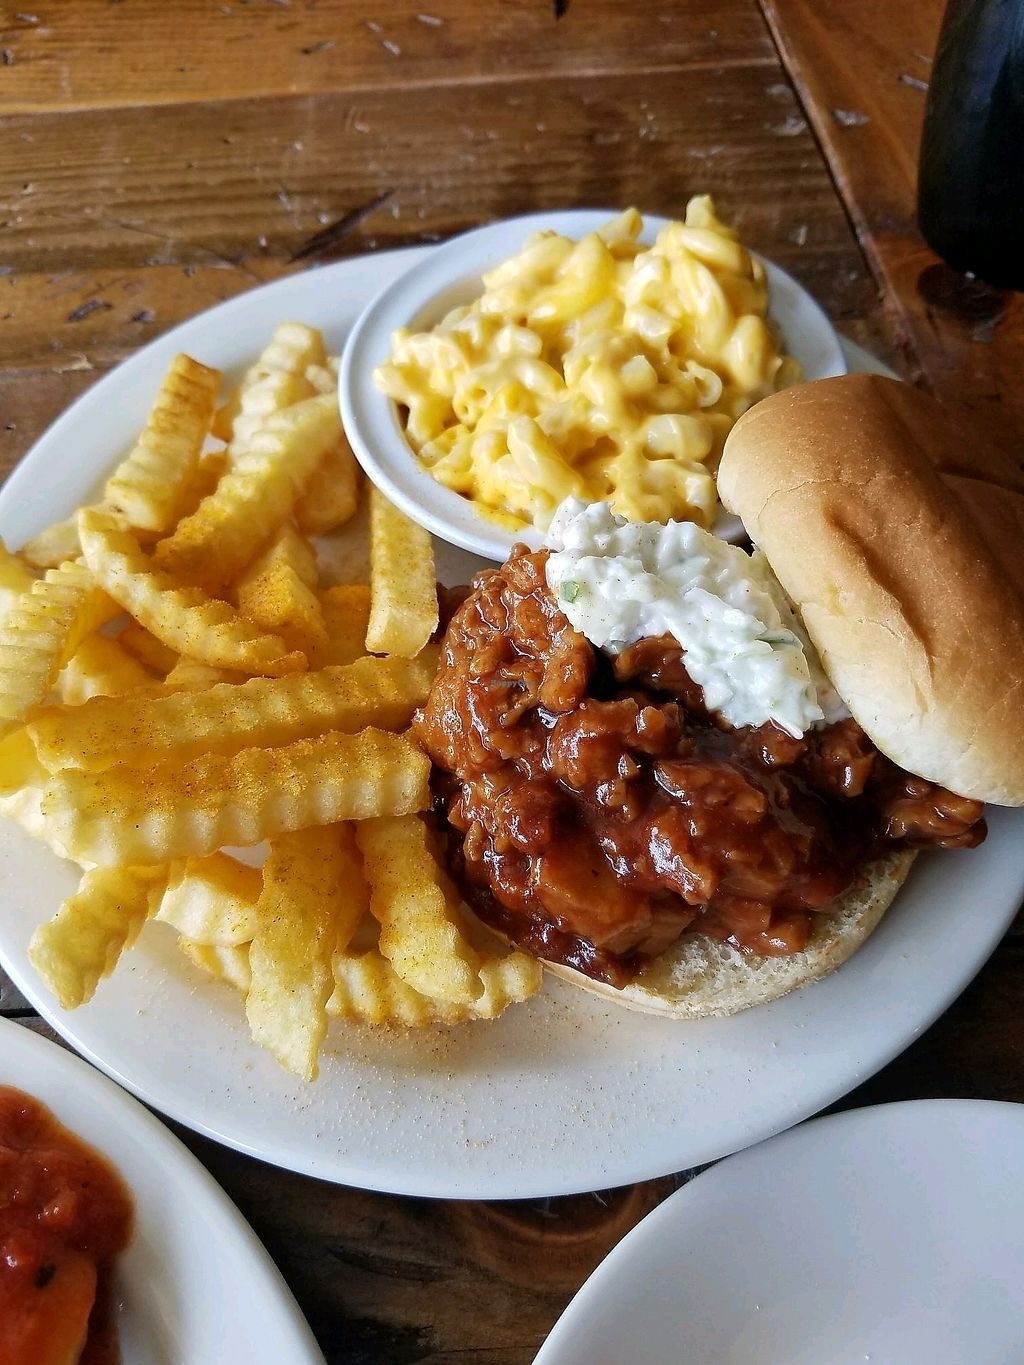 """Photo of Imagine Vegan Cafe  by <a href=""""/members/profile/NickJ"""">NickJ</a> <br/>Memphis BBQ and Mac and Cheese <br/> October 2, 2017  - <a href='/contact/abuse/image/26621/311156'>Report</a>"""